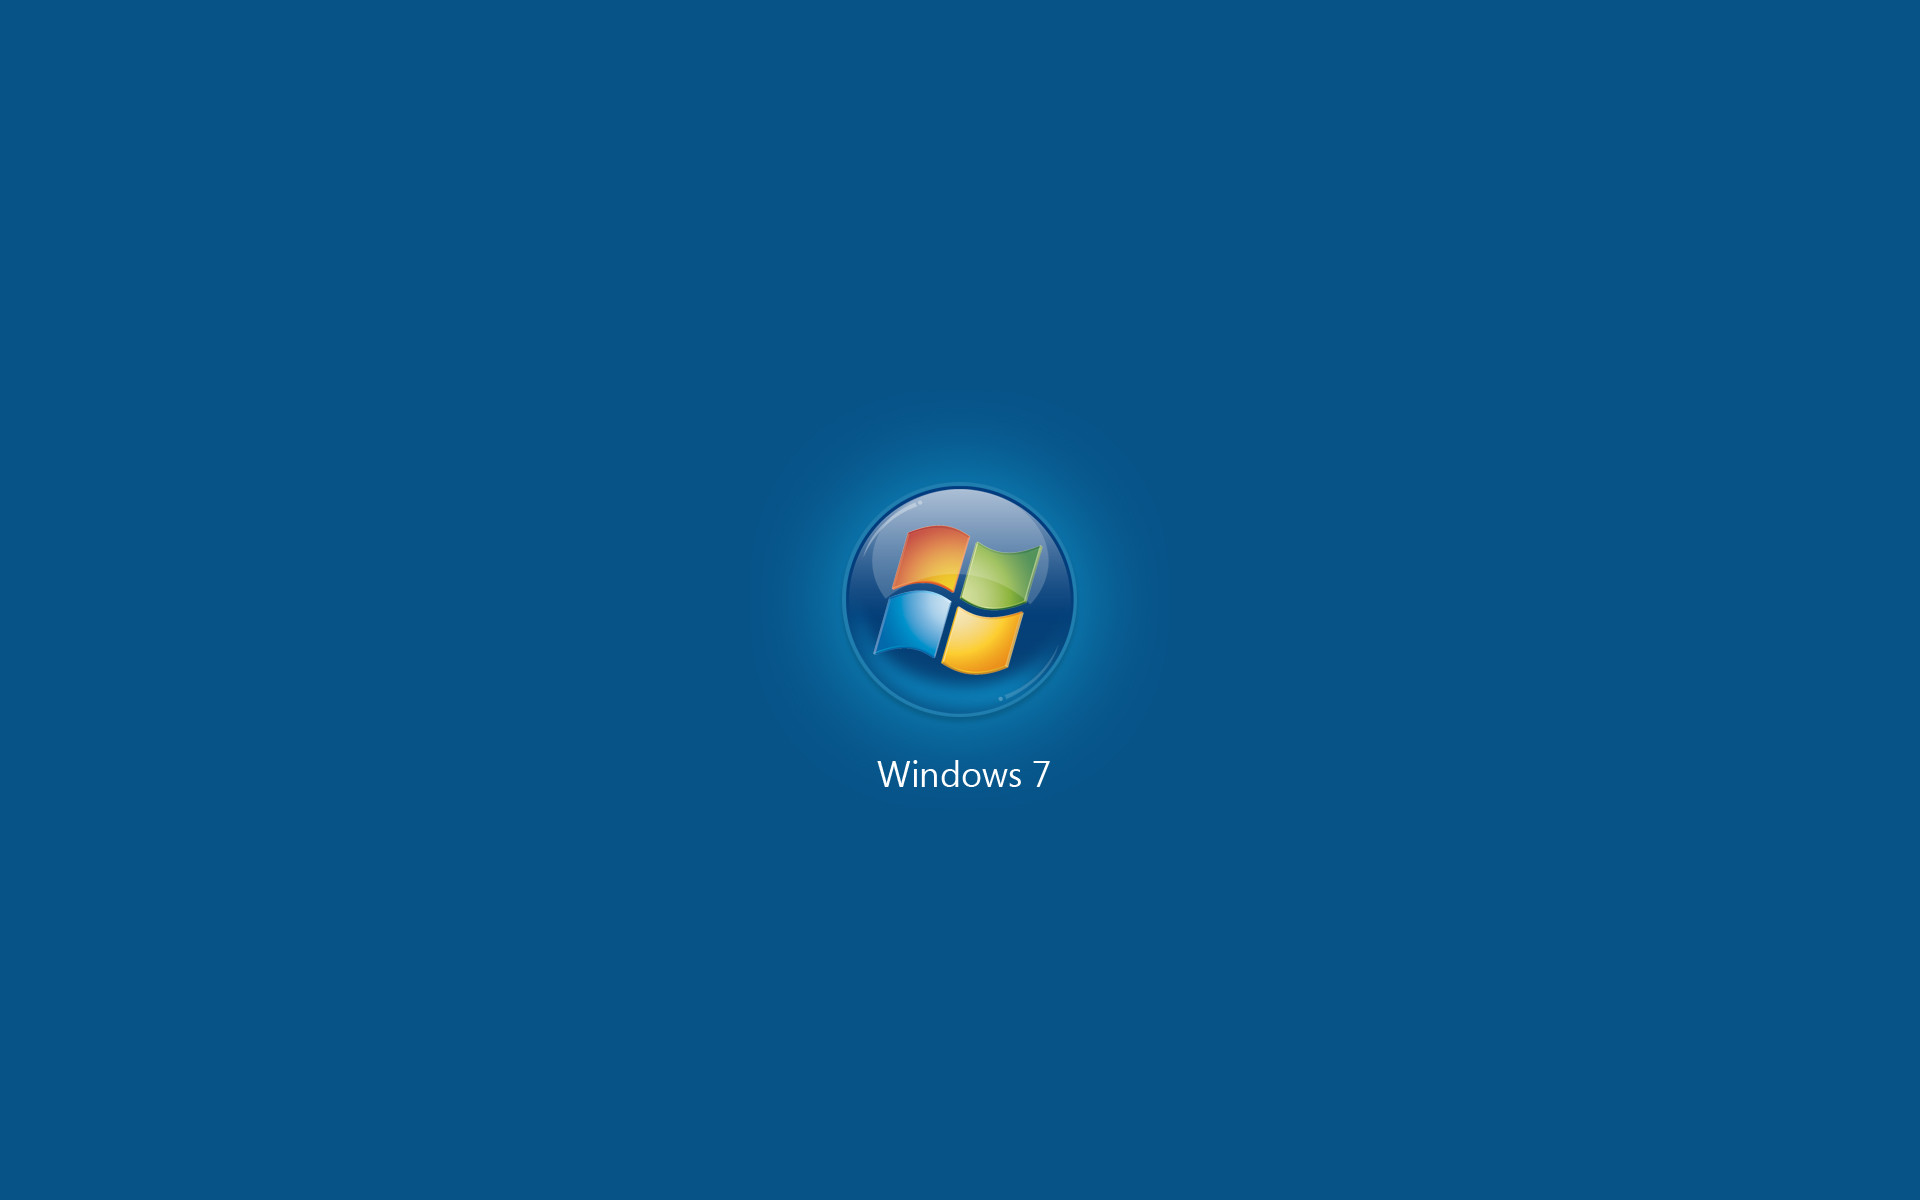 Windows 7 Background Hd 80 Pictures